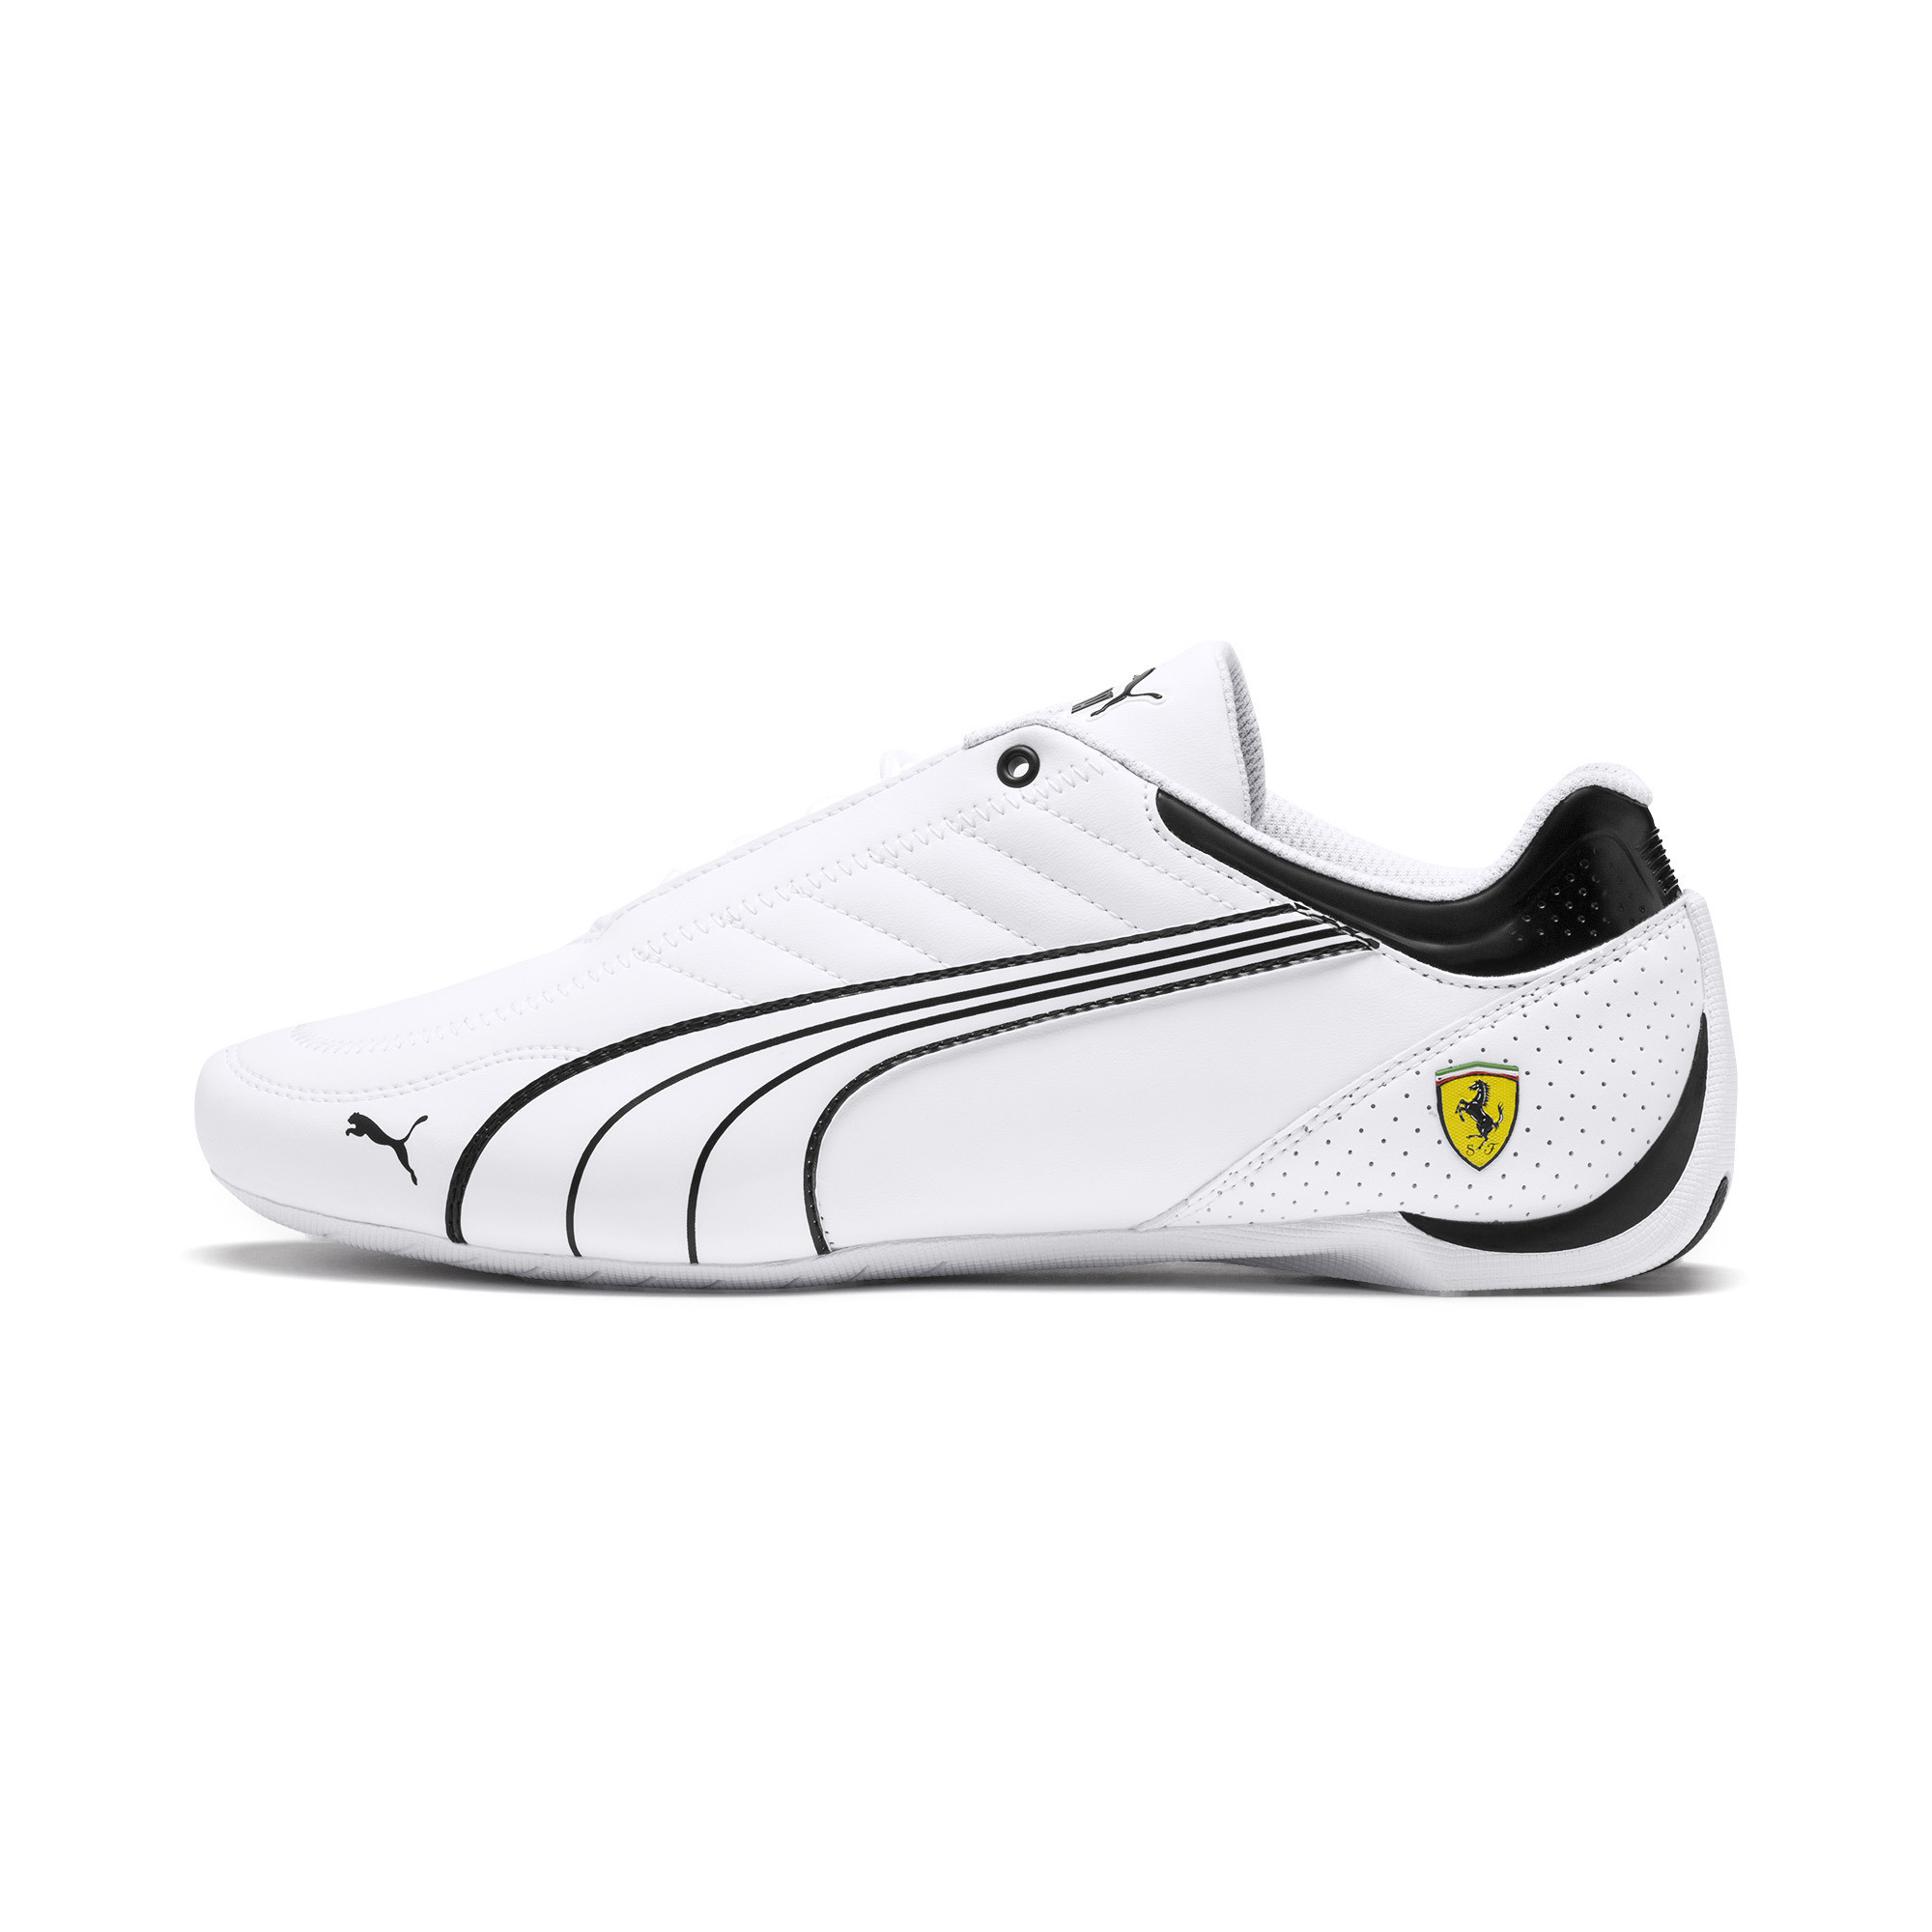 PUMA-Scuderia-Ferrari-Future-Kart-Cat-Men-039-s-Shoes-Men-Shoe-Auto thumbnail 18